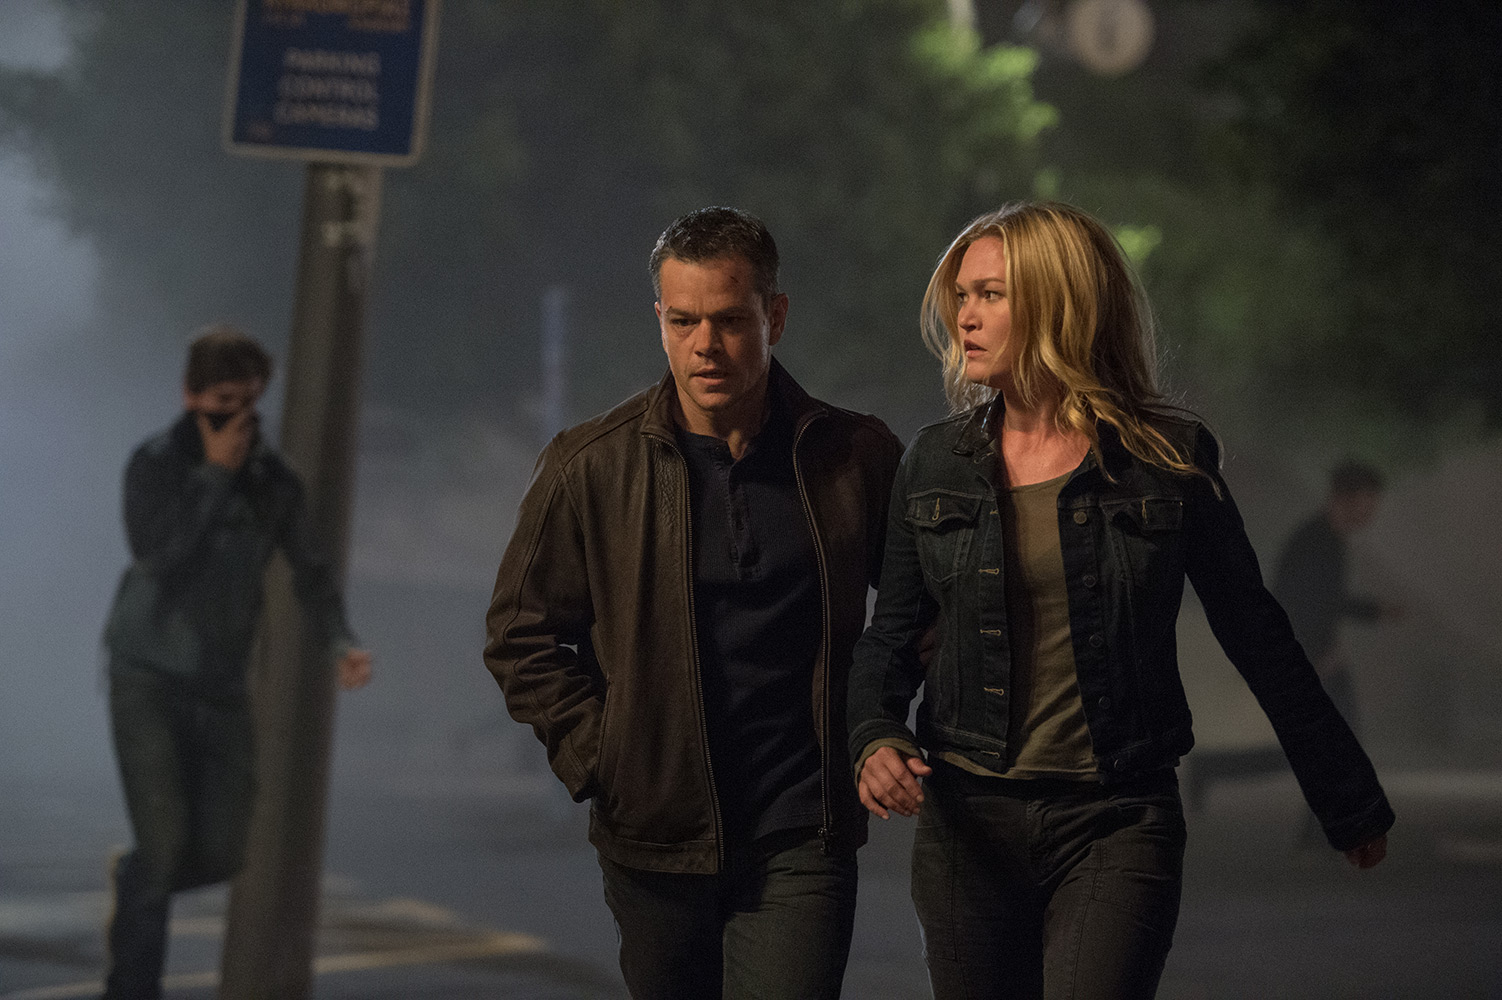 Matt Damon and Julia Stiles walk the streets of Athens in Jason Bourne (2016)